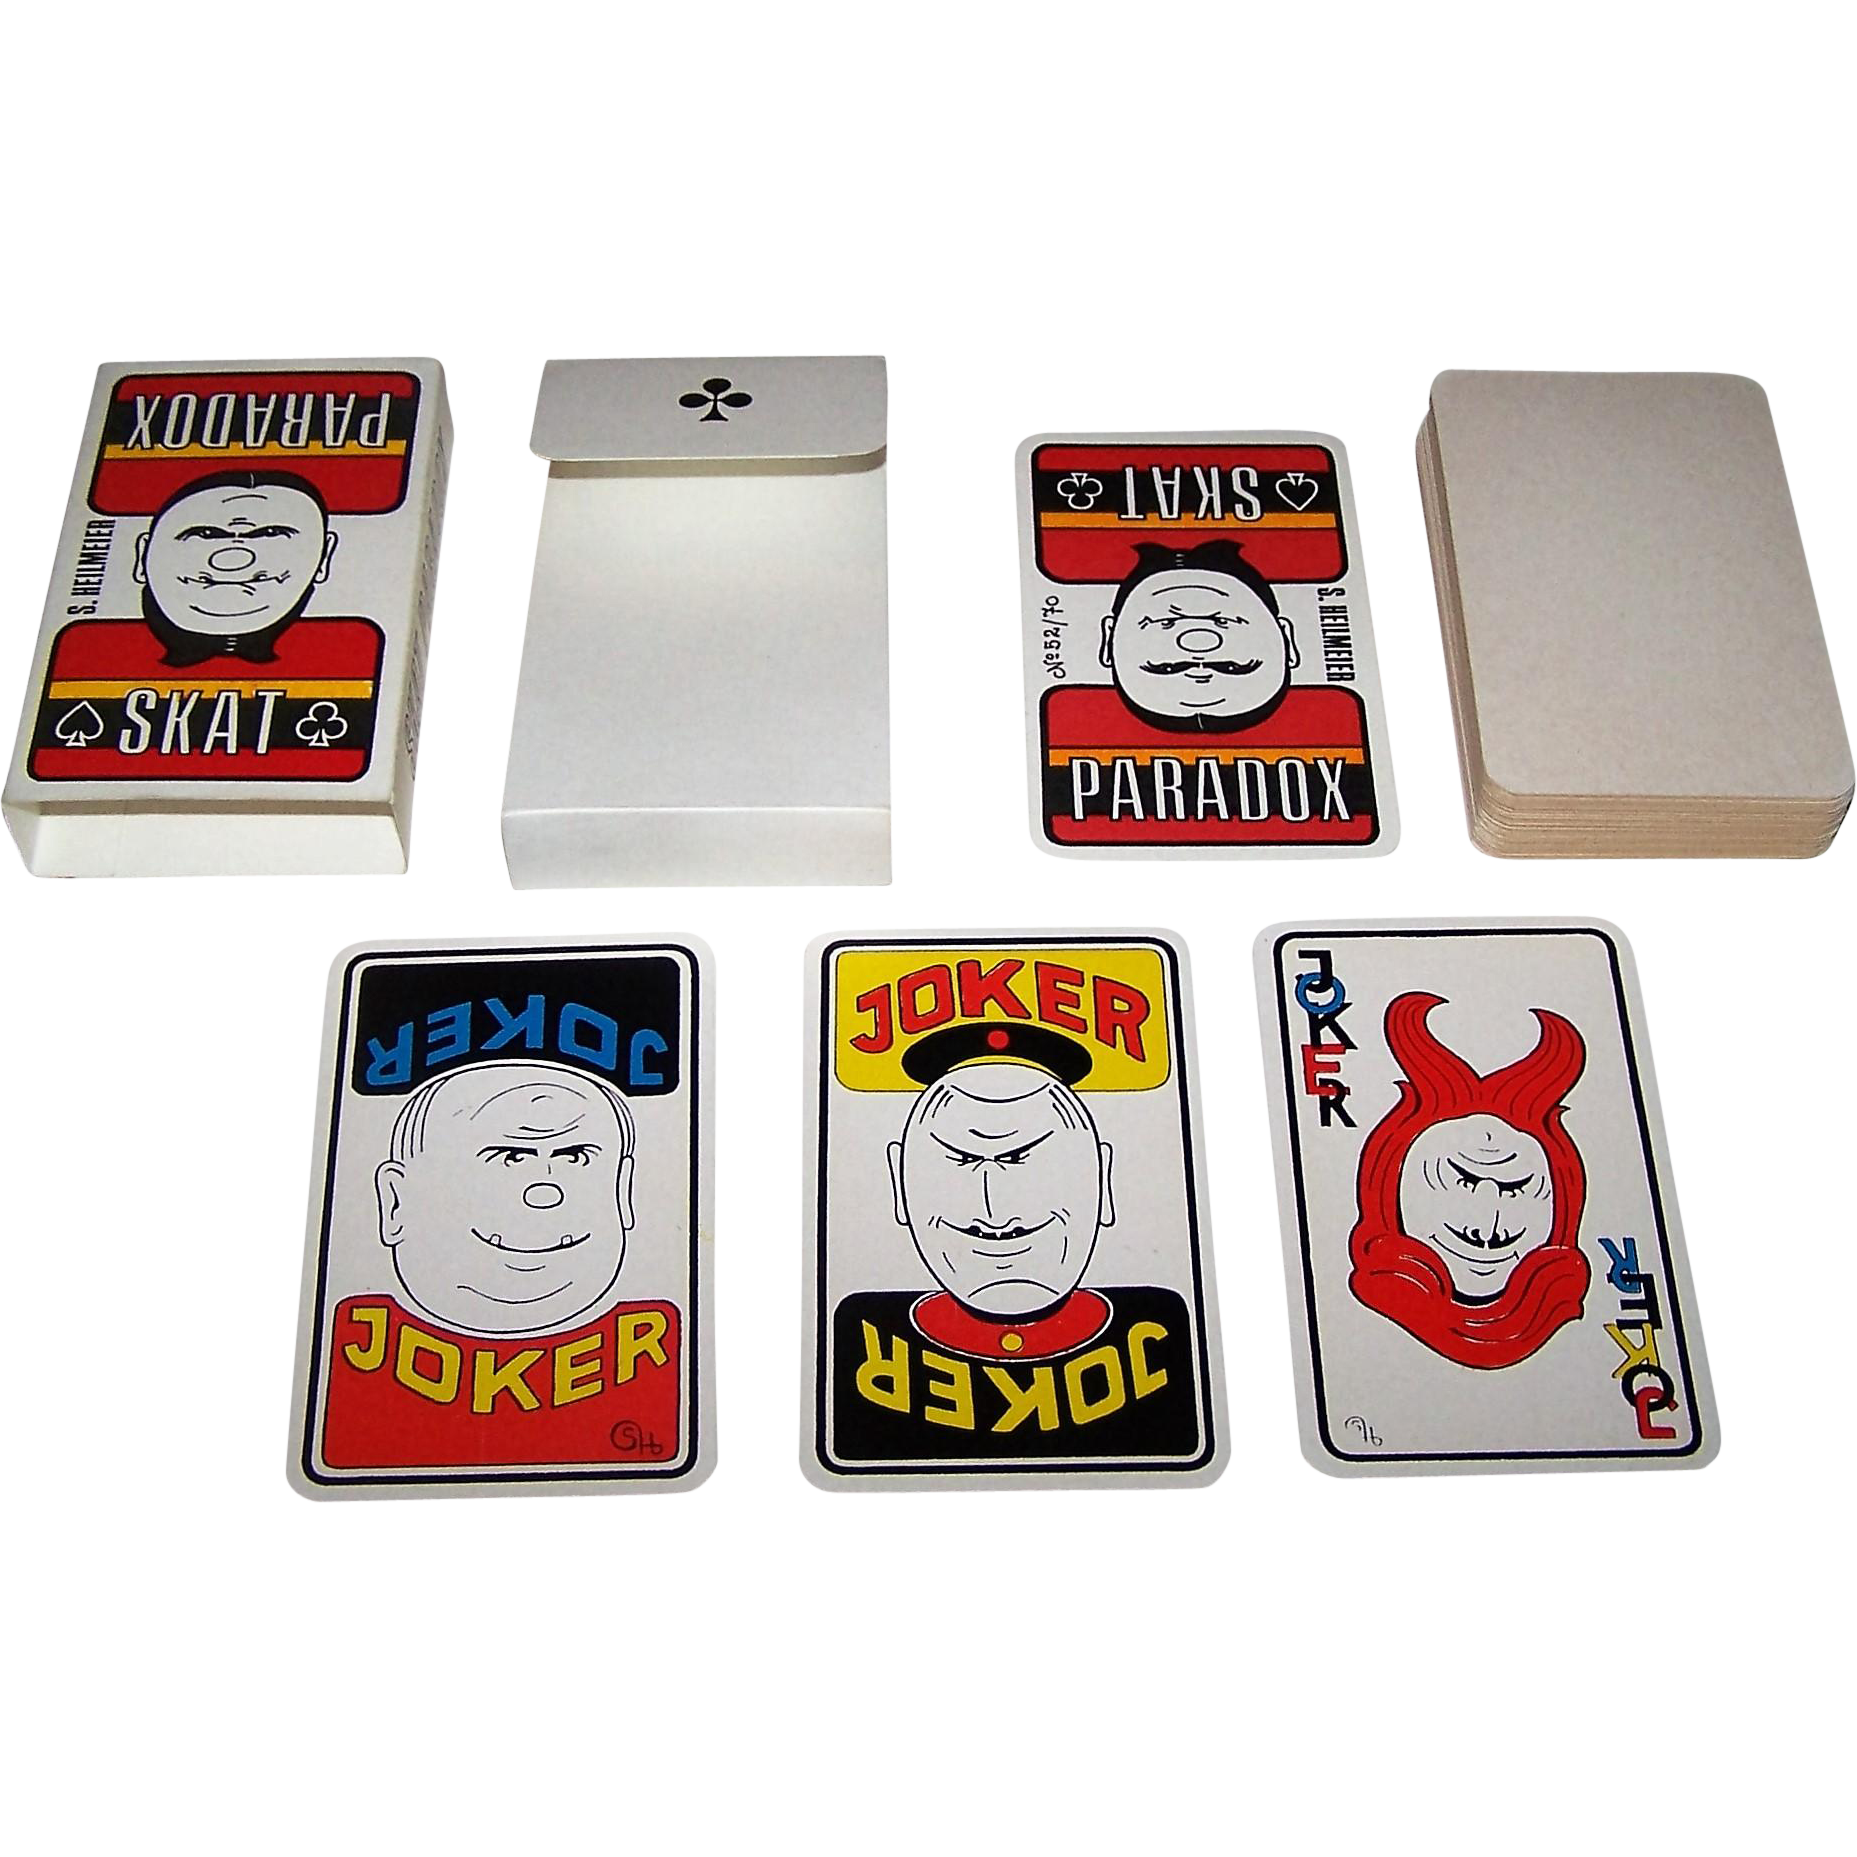 "Siegfried Heilmeier ""Skat Paradox"" Skat Playing Cards, Ltd. Ed. (52/70), c.1991"